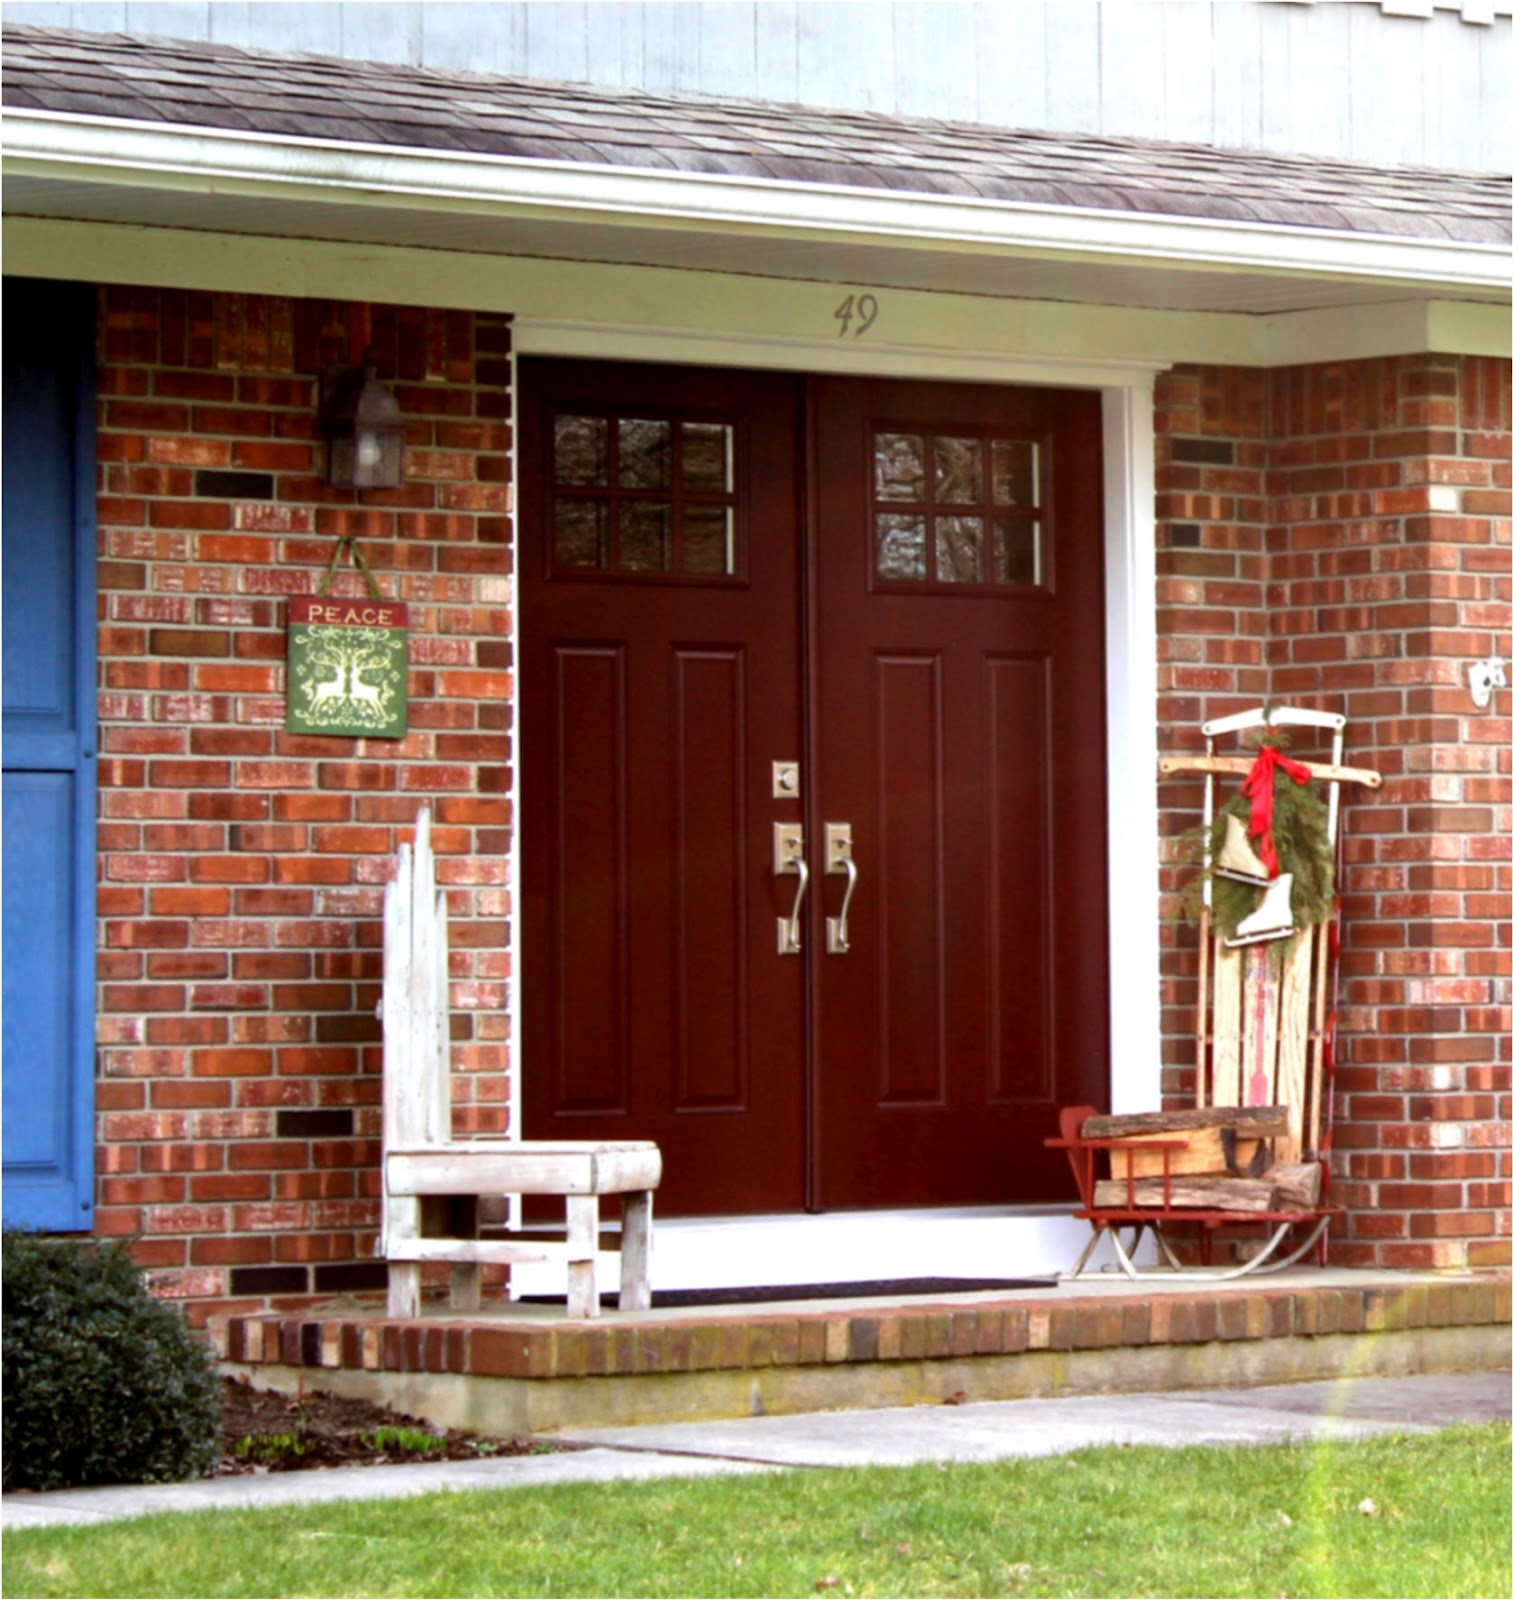 Brick House Front Door Color: Front Door Colors For Red Brick, Beige, And Gray Houses